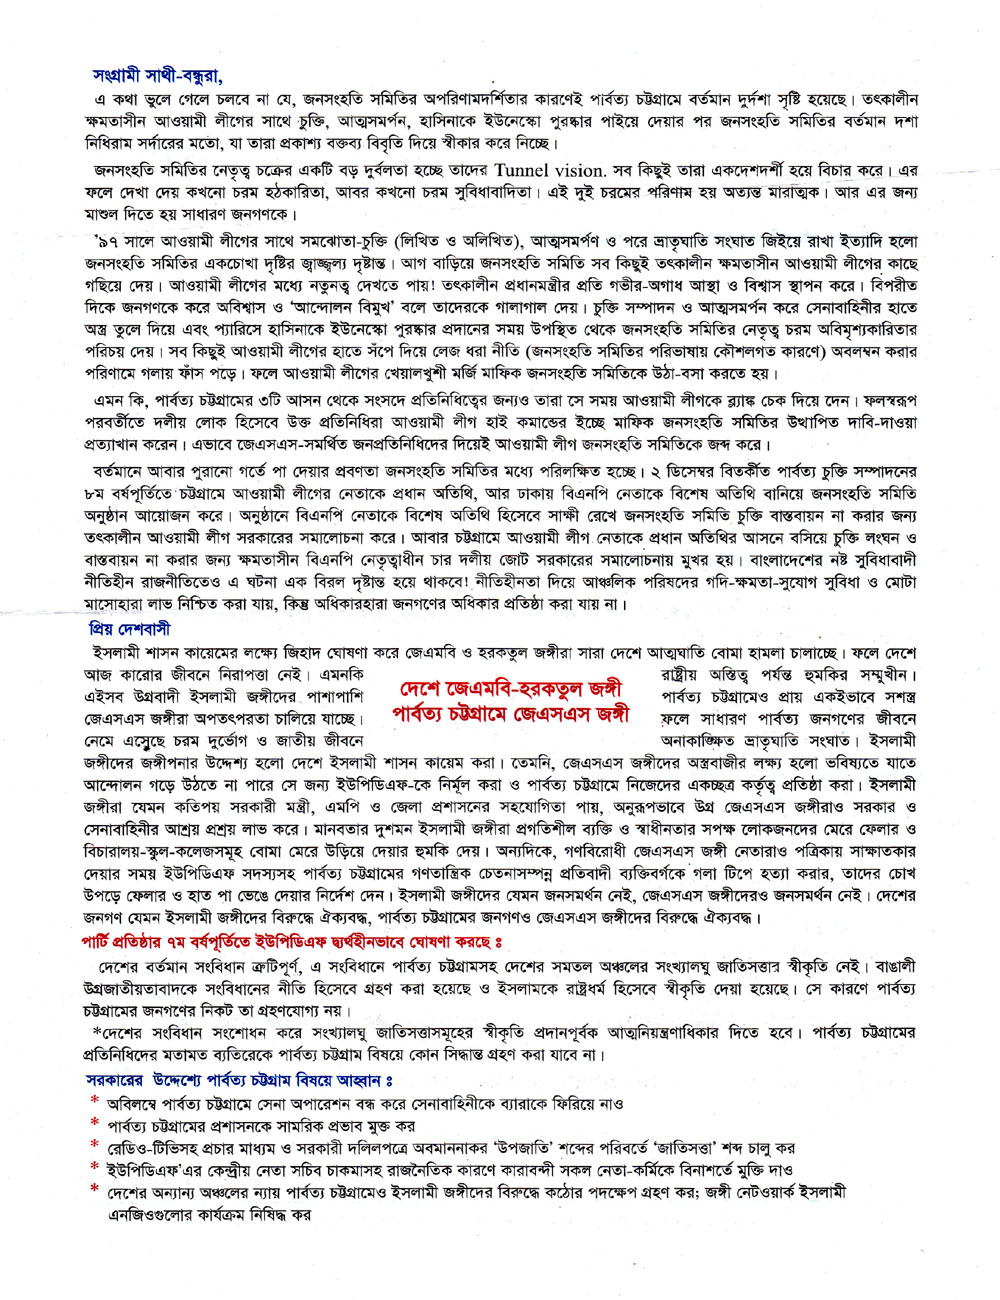 8- Leaflet on 7  founding anniversary, page-3